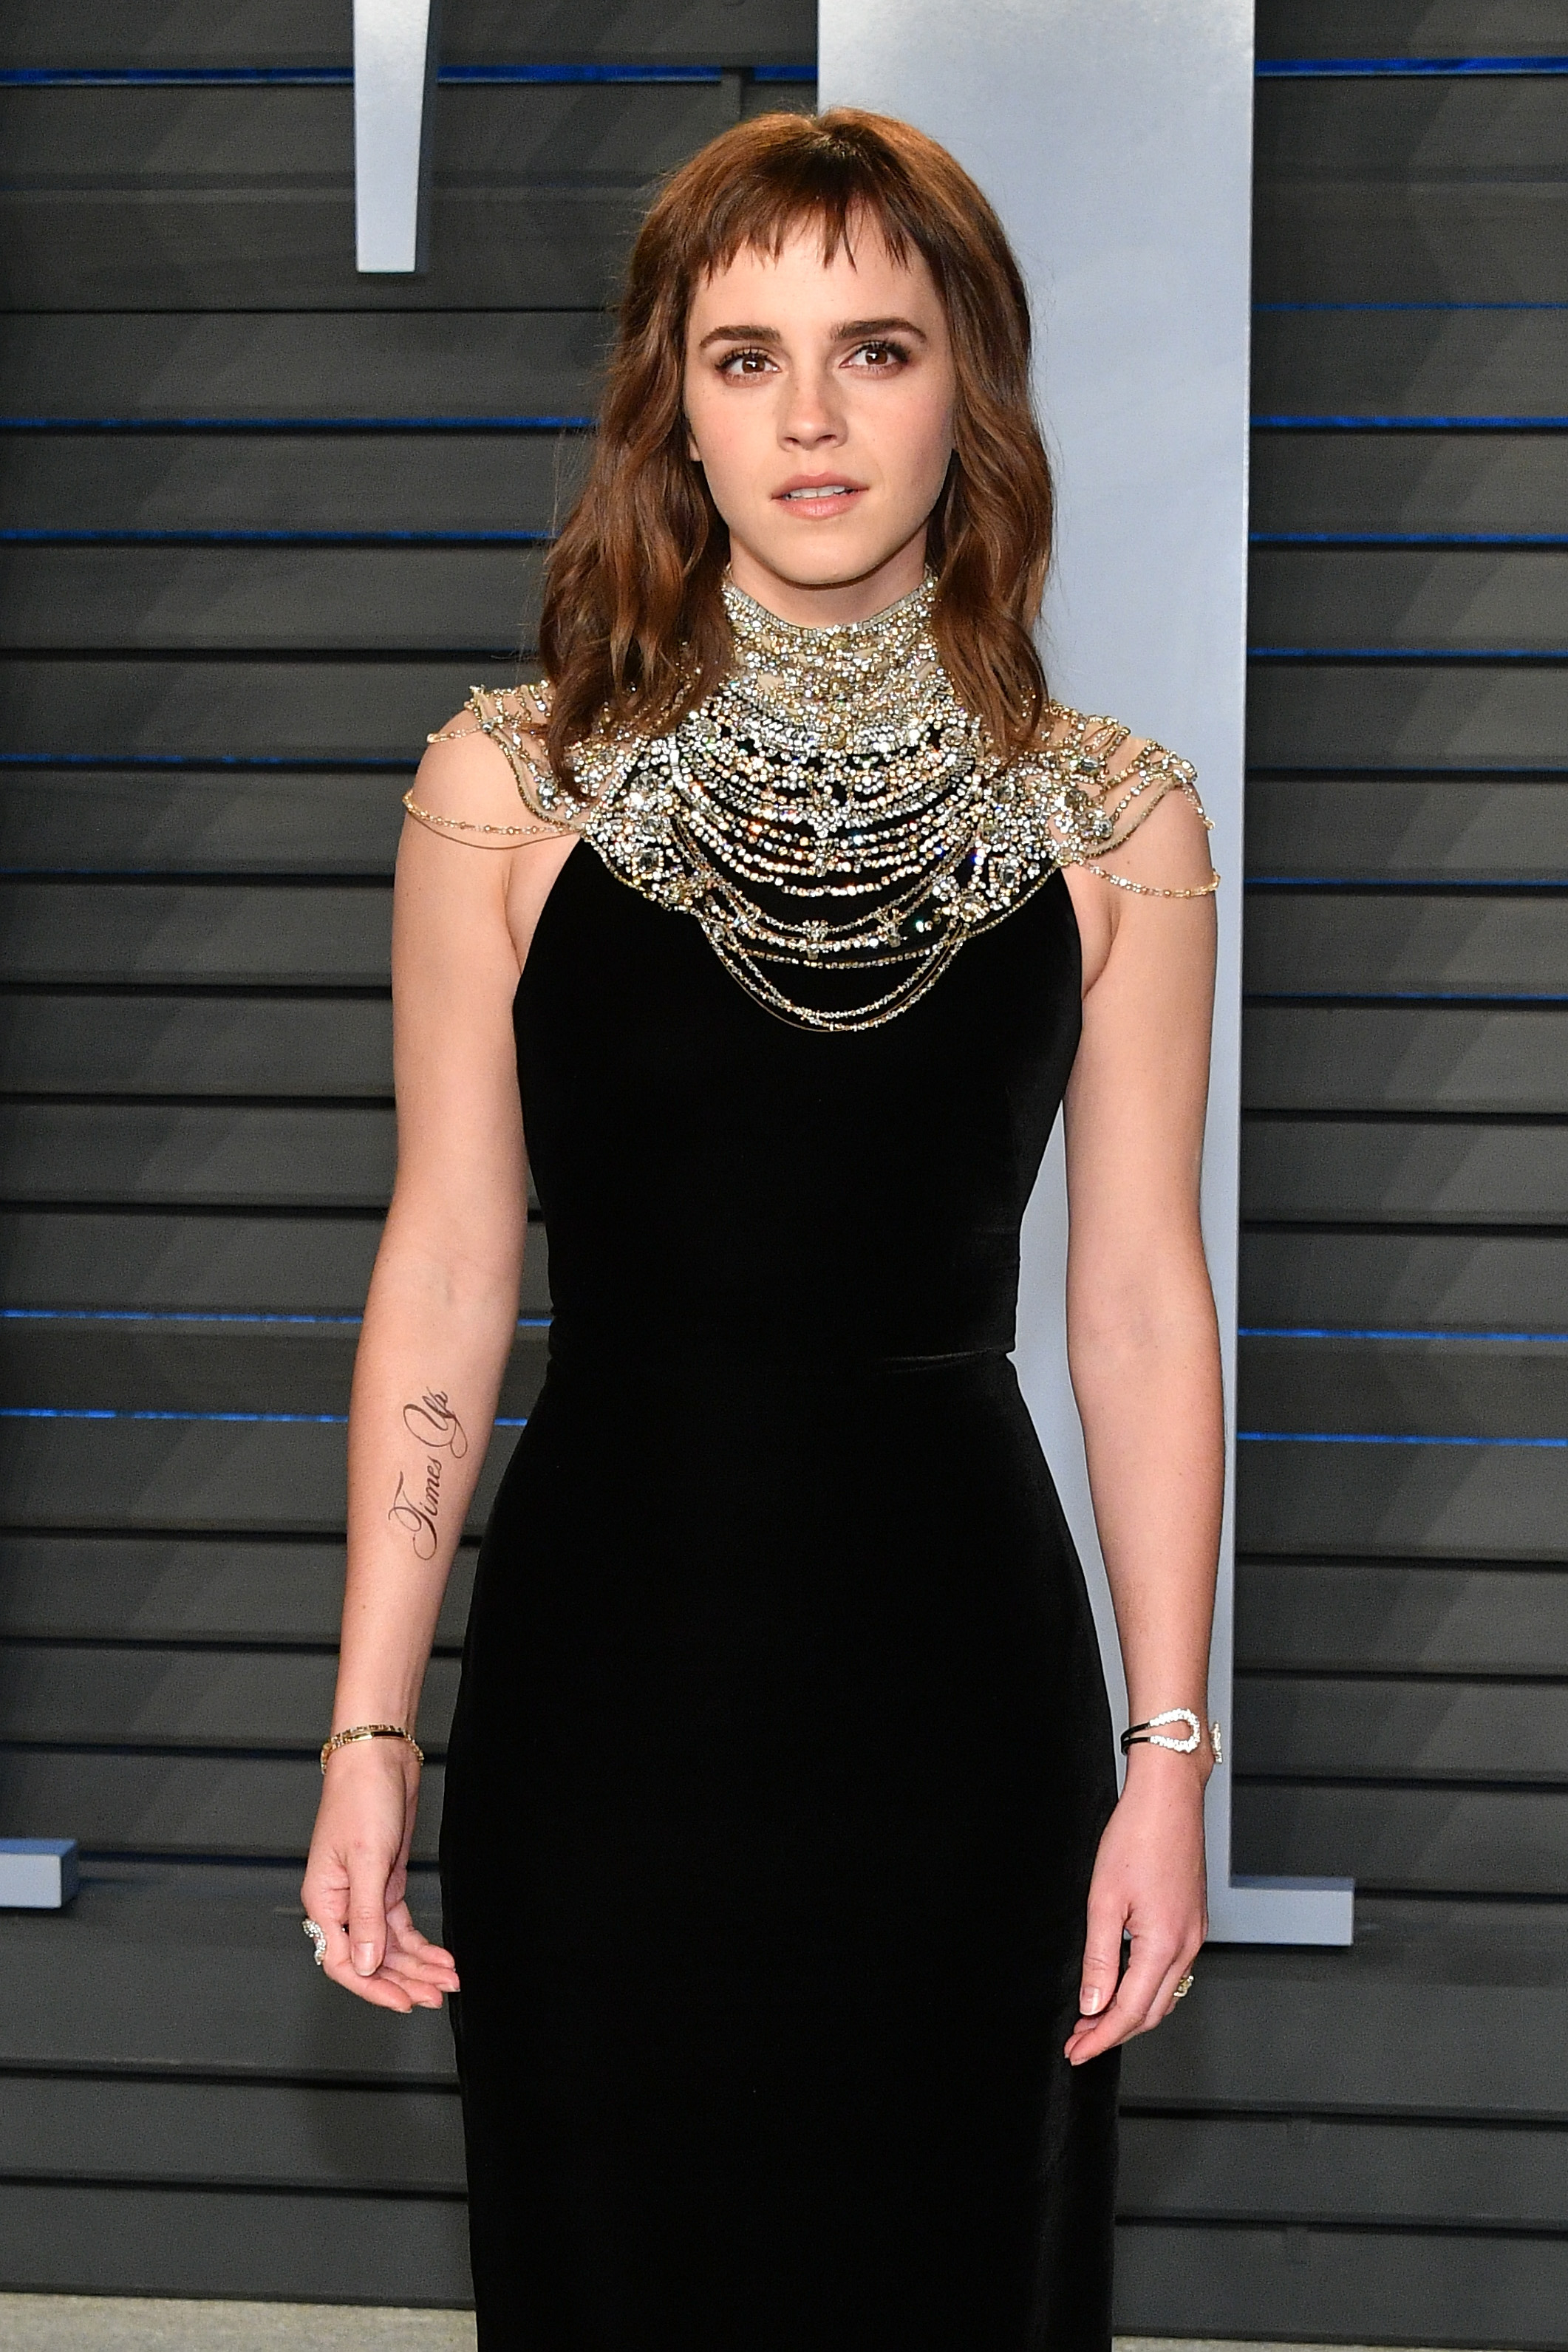 Little Berry Emma Watson Reacts To Her Recent Tattoo Blunder In The